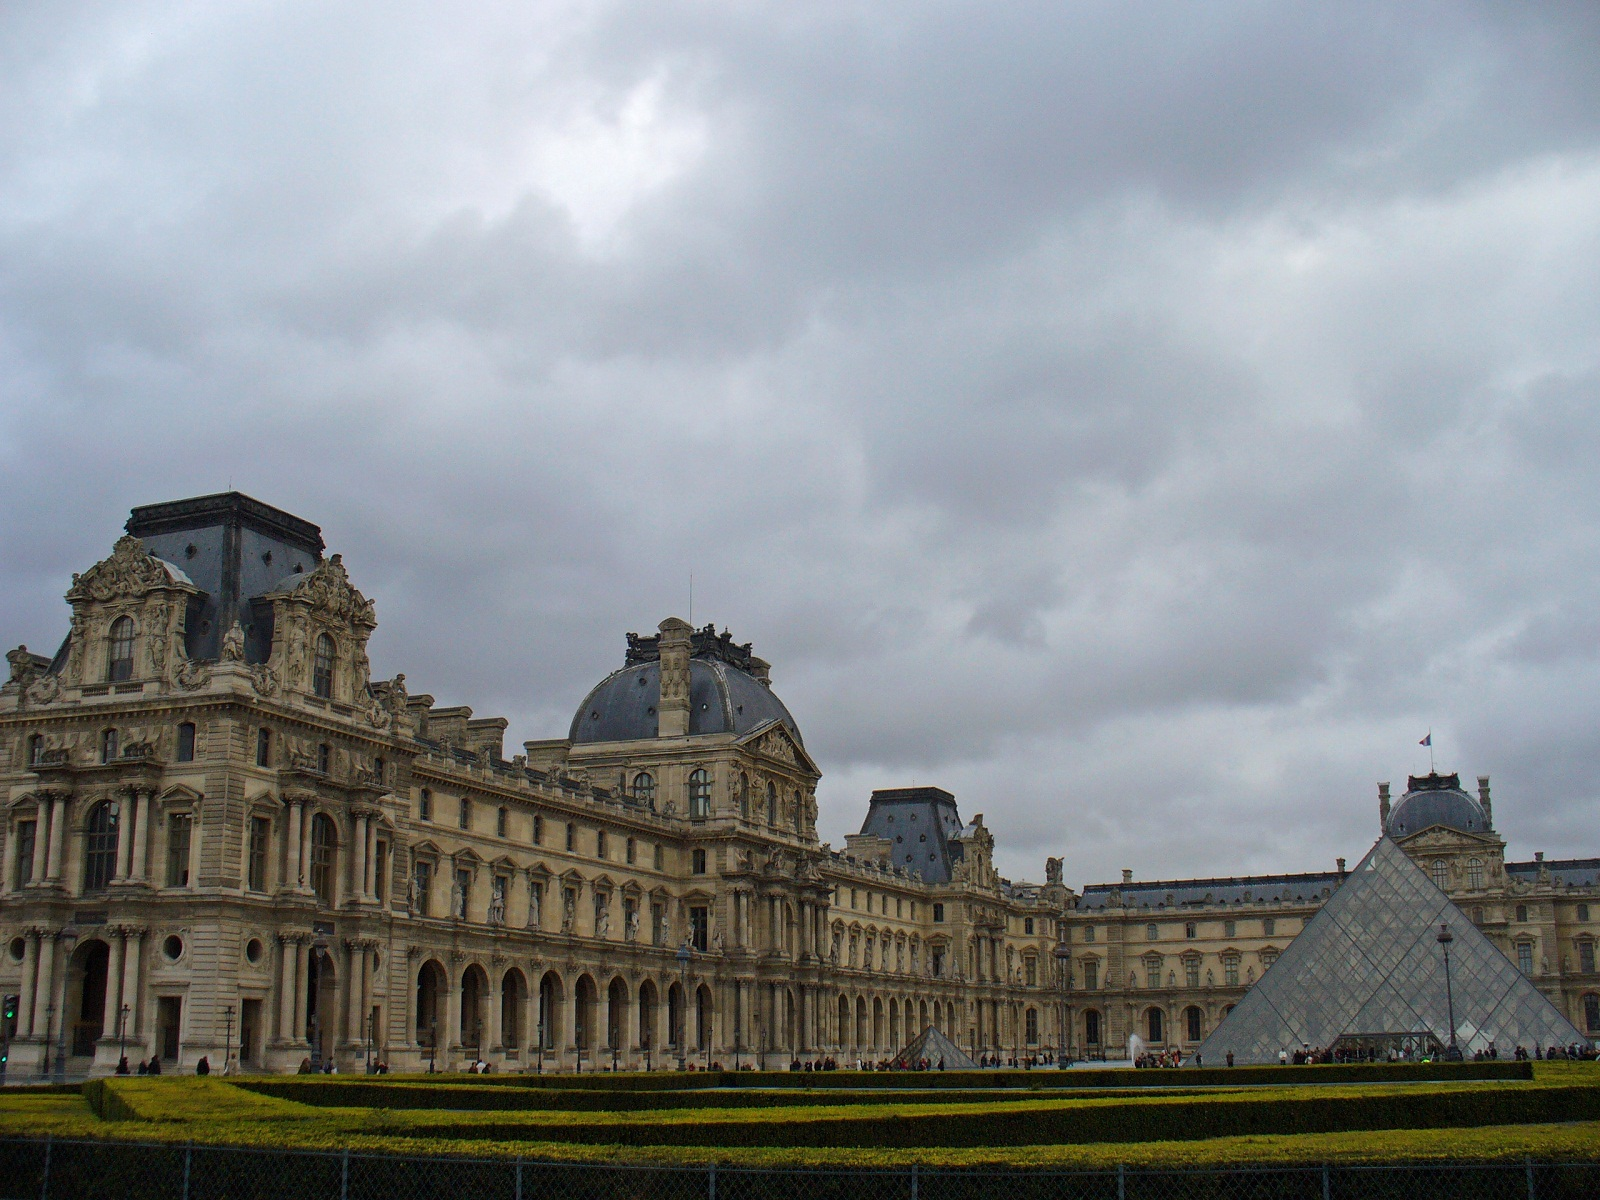 Paris Architecture, France, Le Louvre, Pyramid and Pavillon Sully